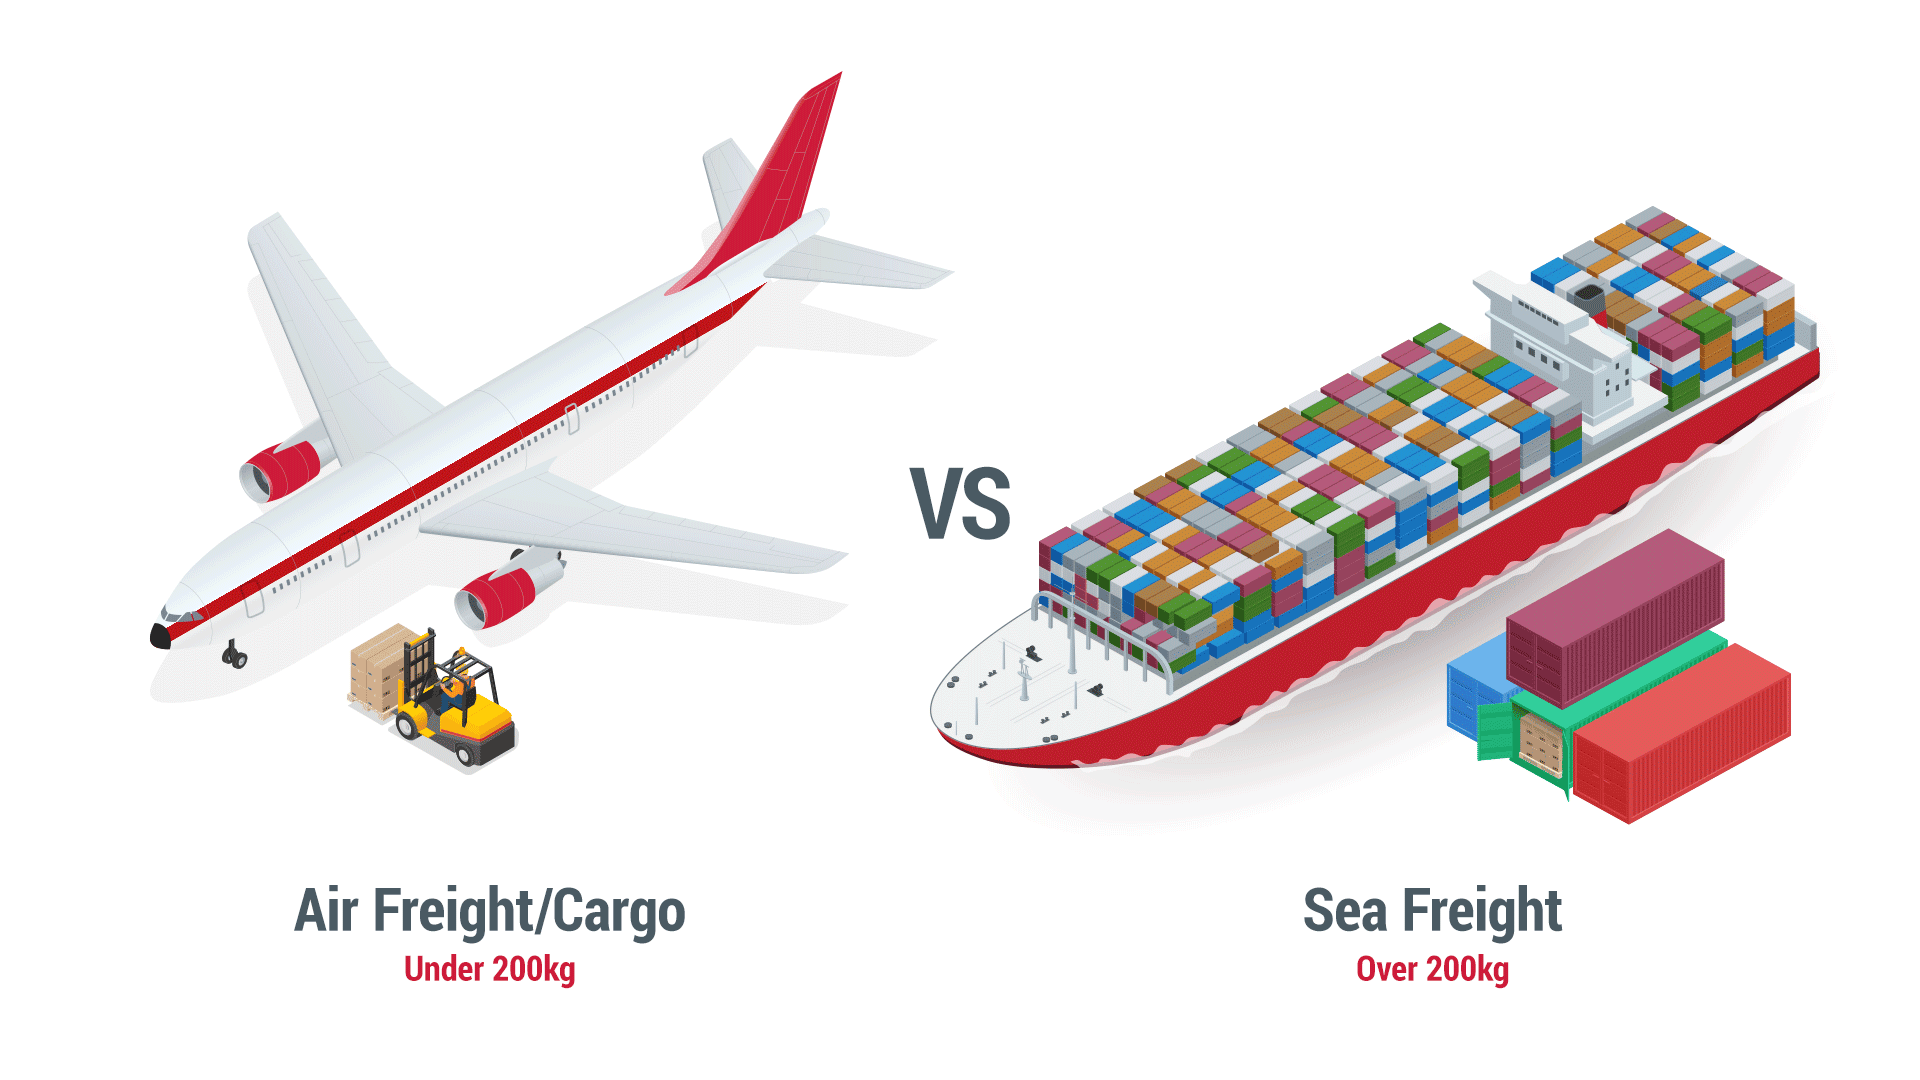 Air Freight vs Sea Freight